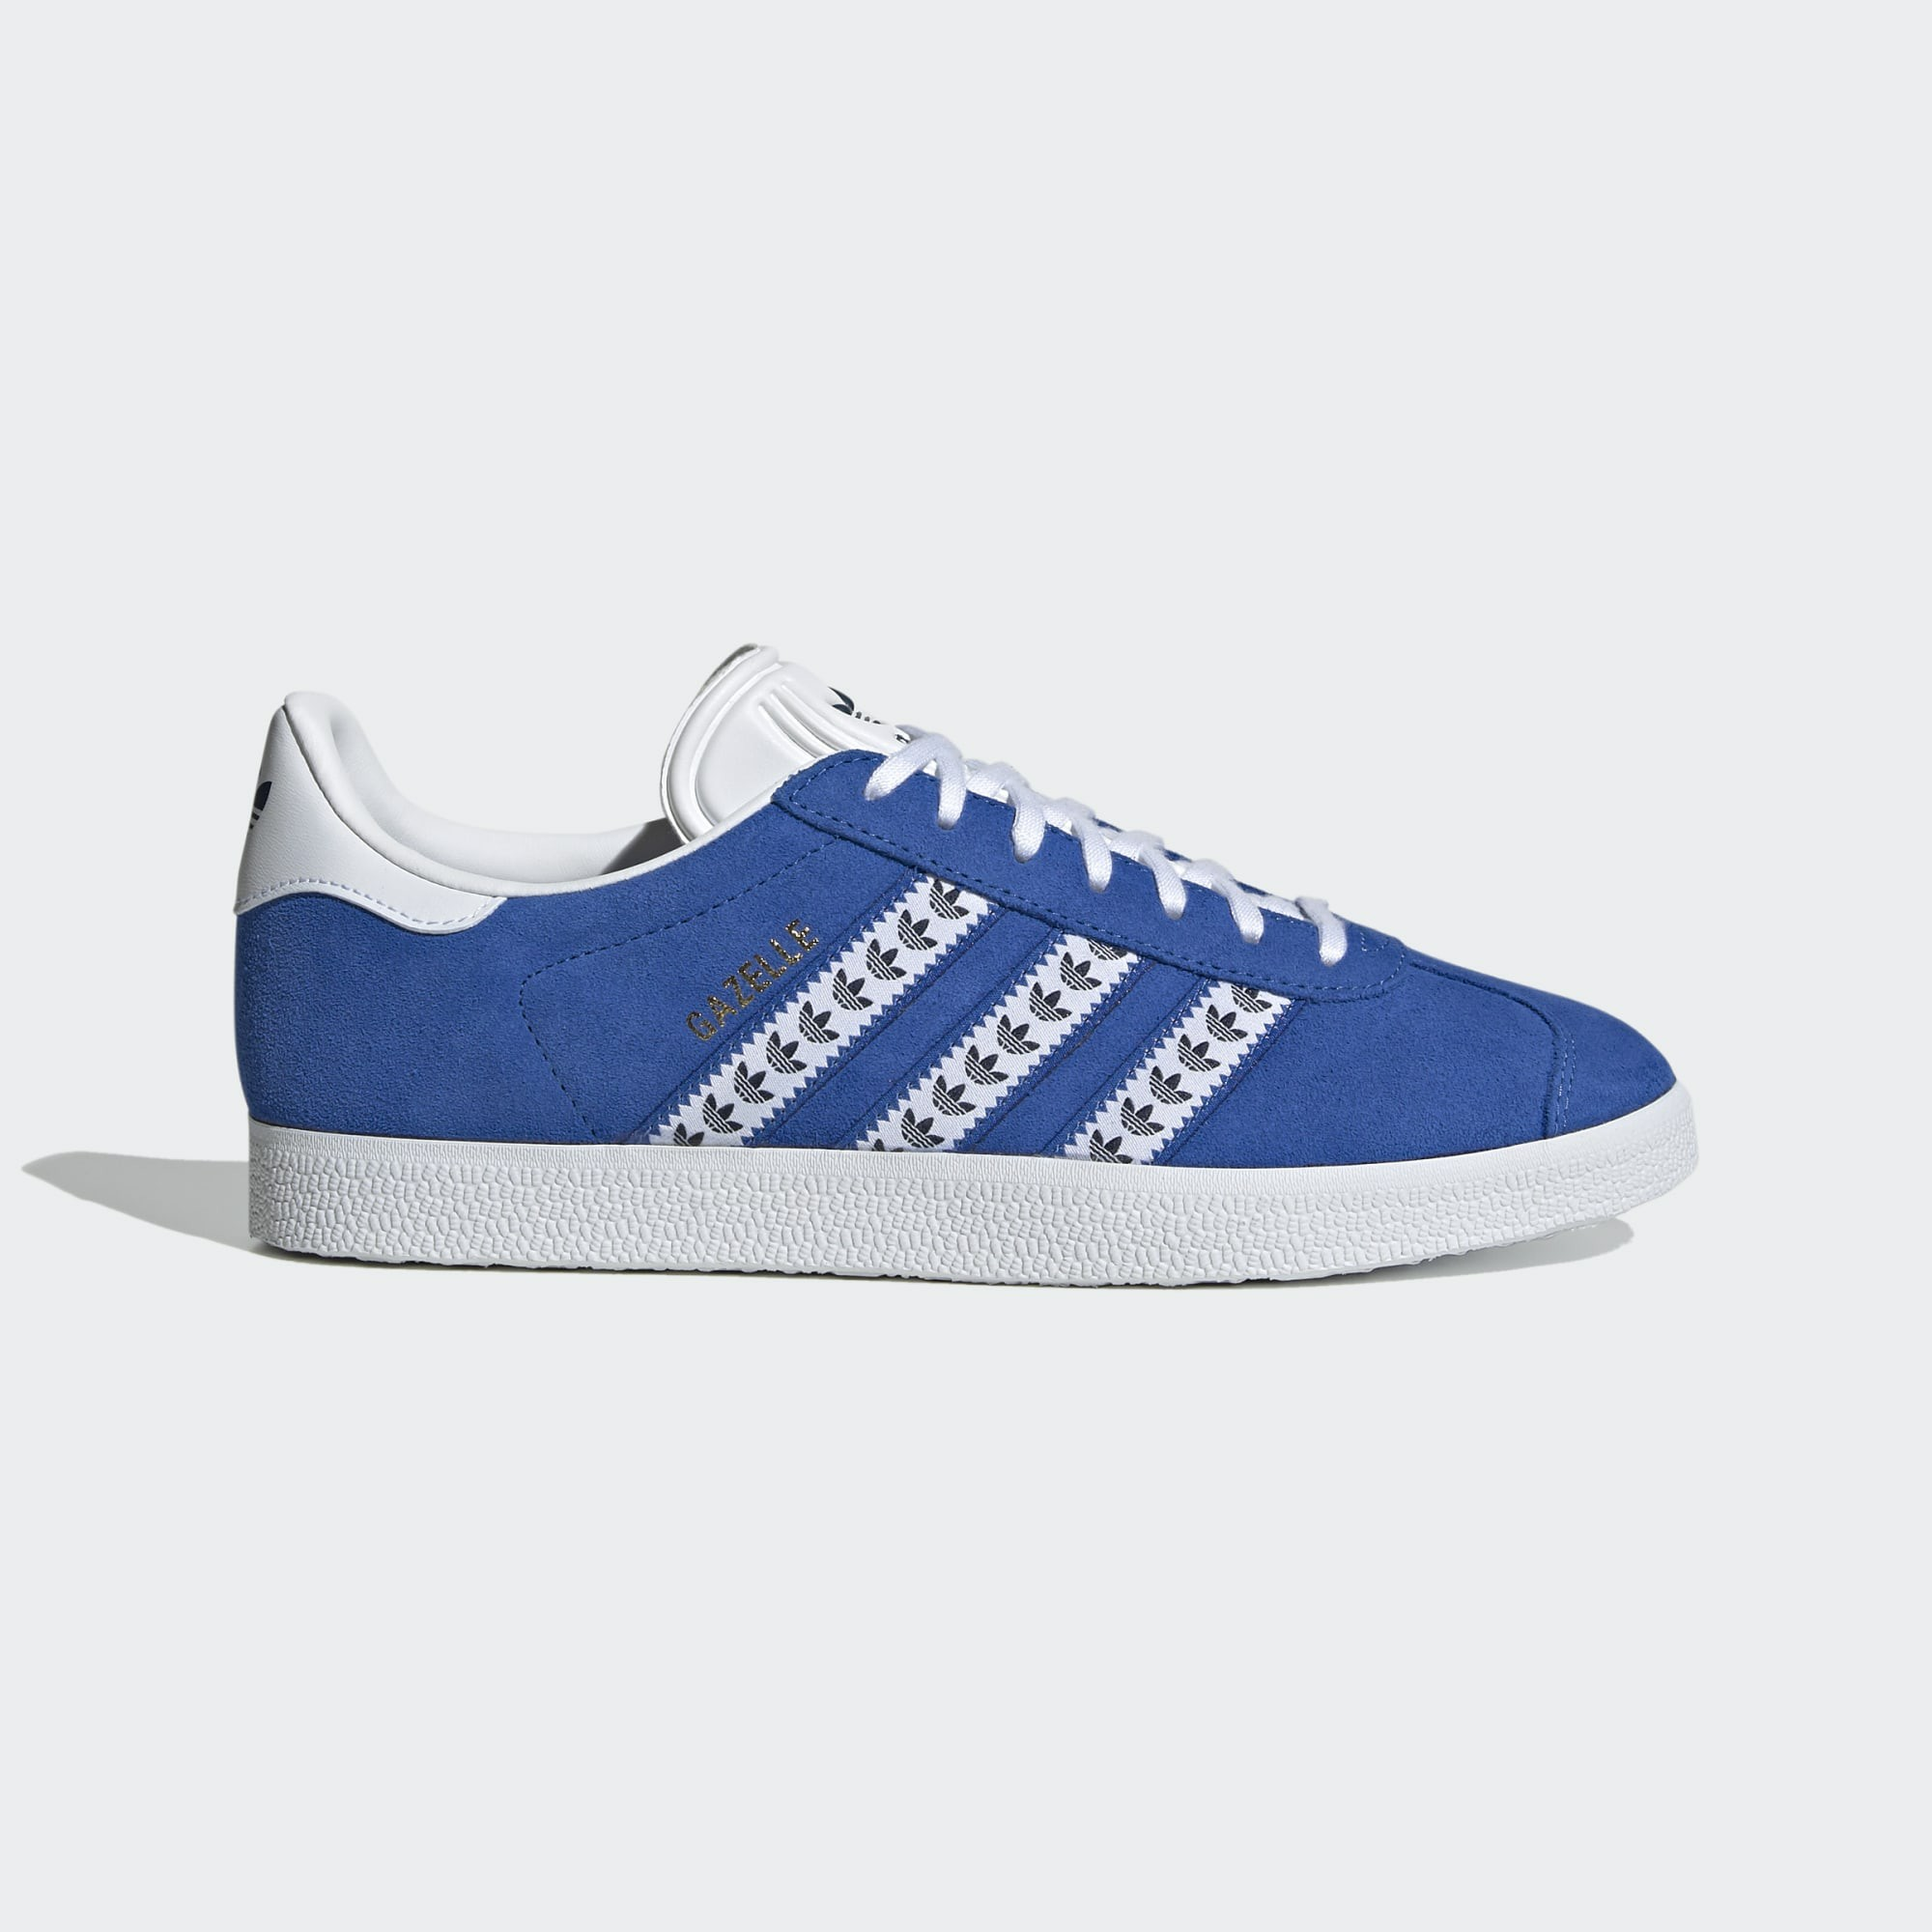 Adidas Gazelle FU9662 Blue/White/Gold Metallic